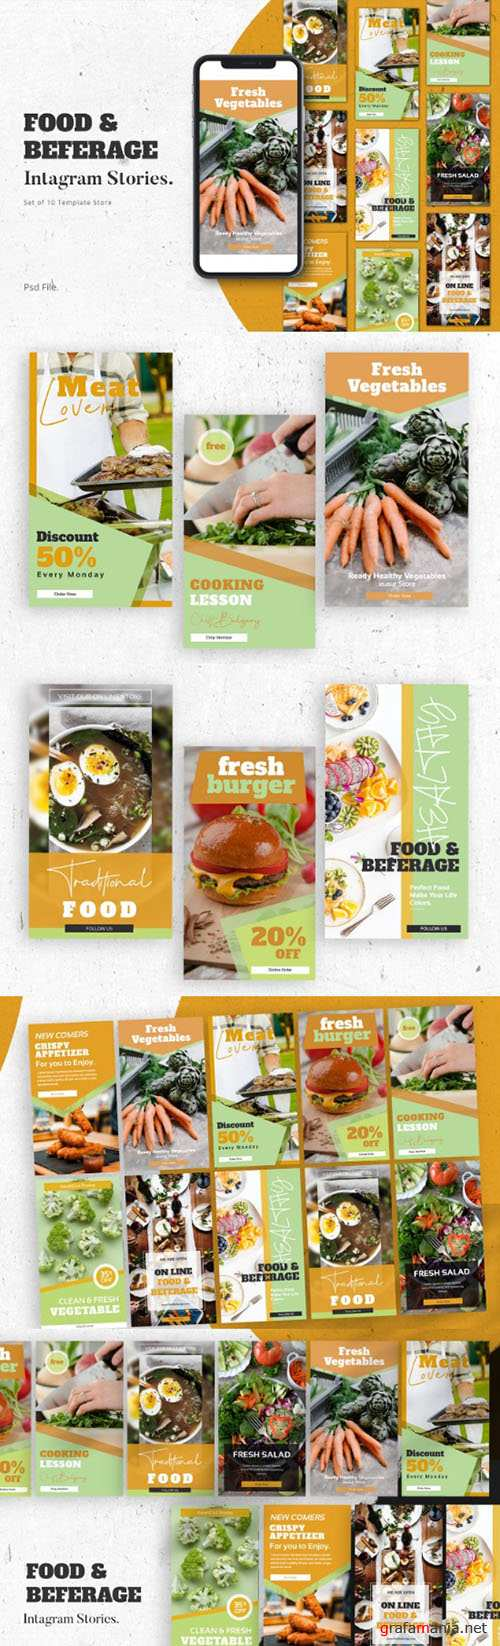 Food & Beferage Instagram Stories Template PSD